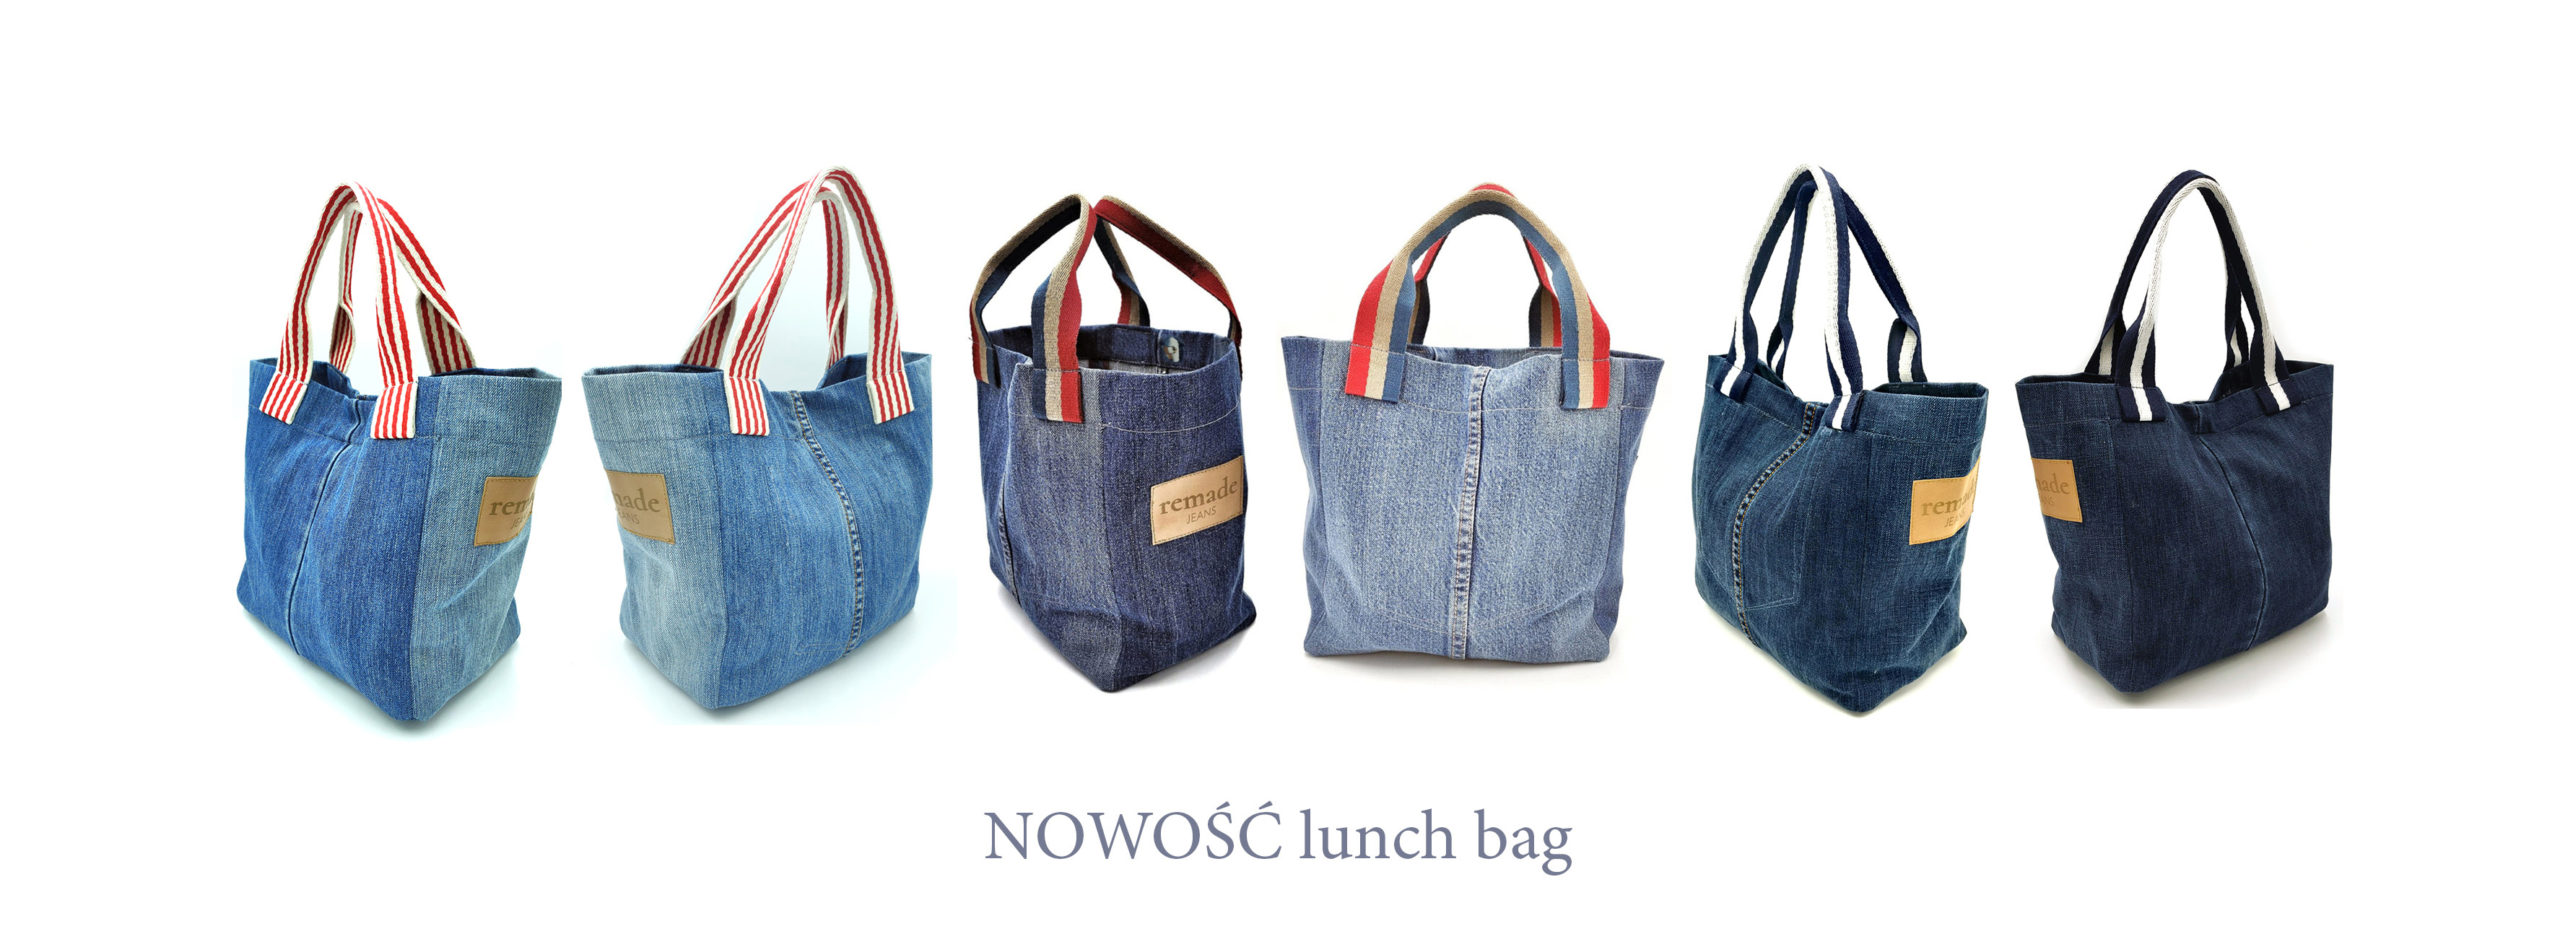 dżinsowa torba na lunch lesswaste slowfashion